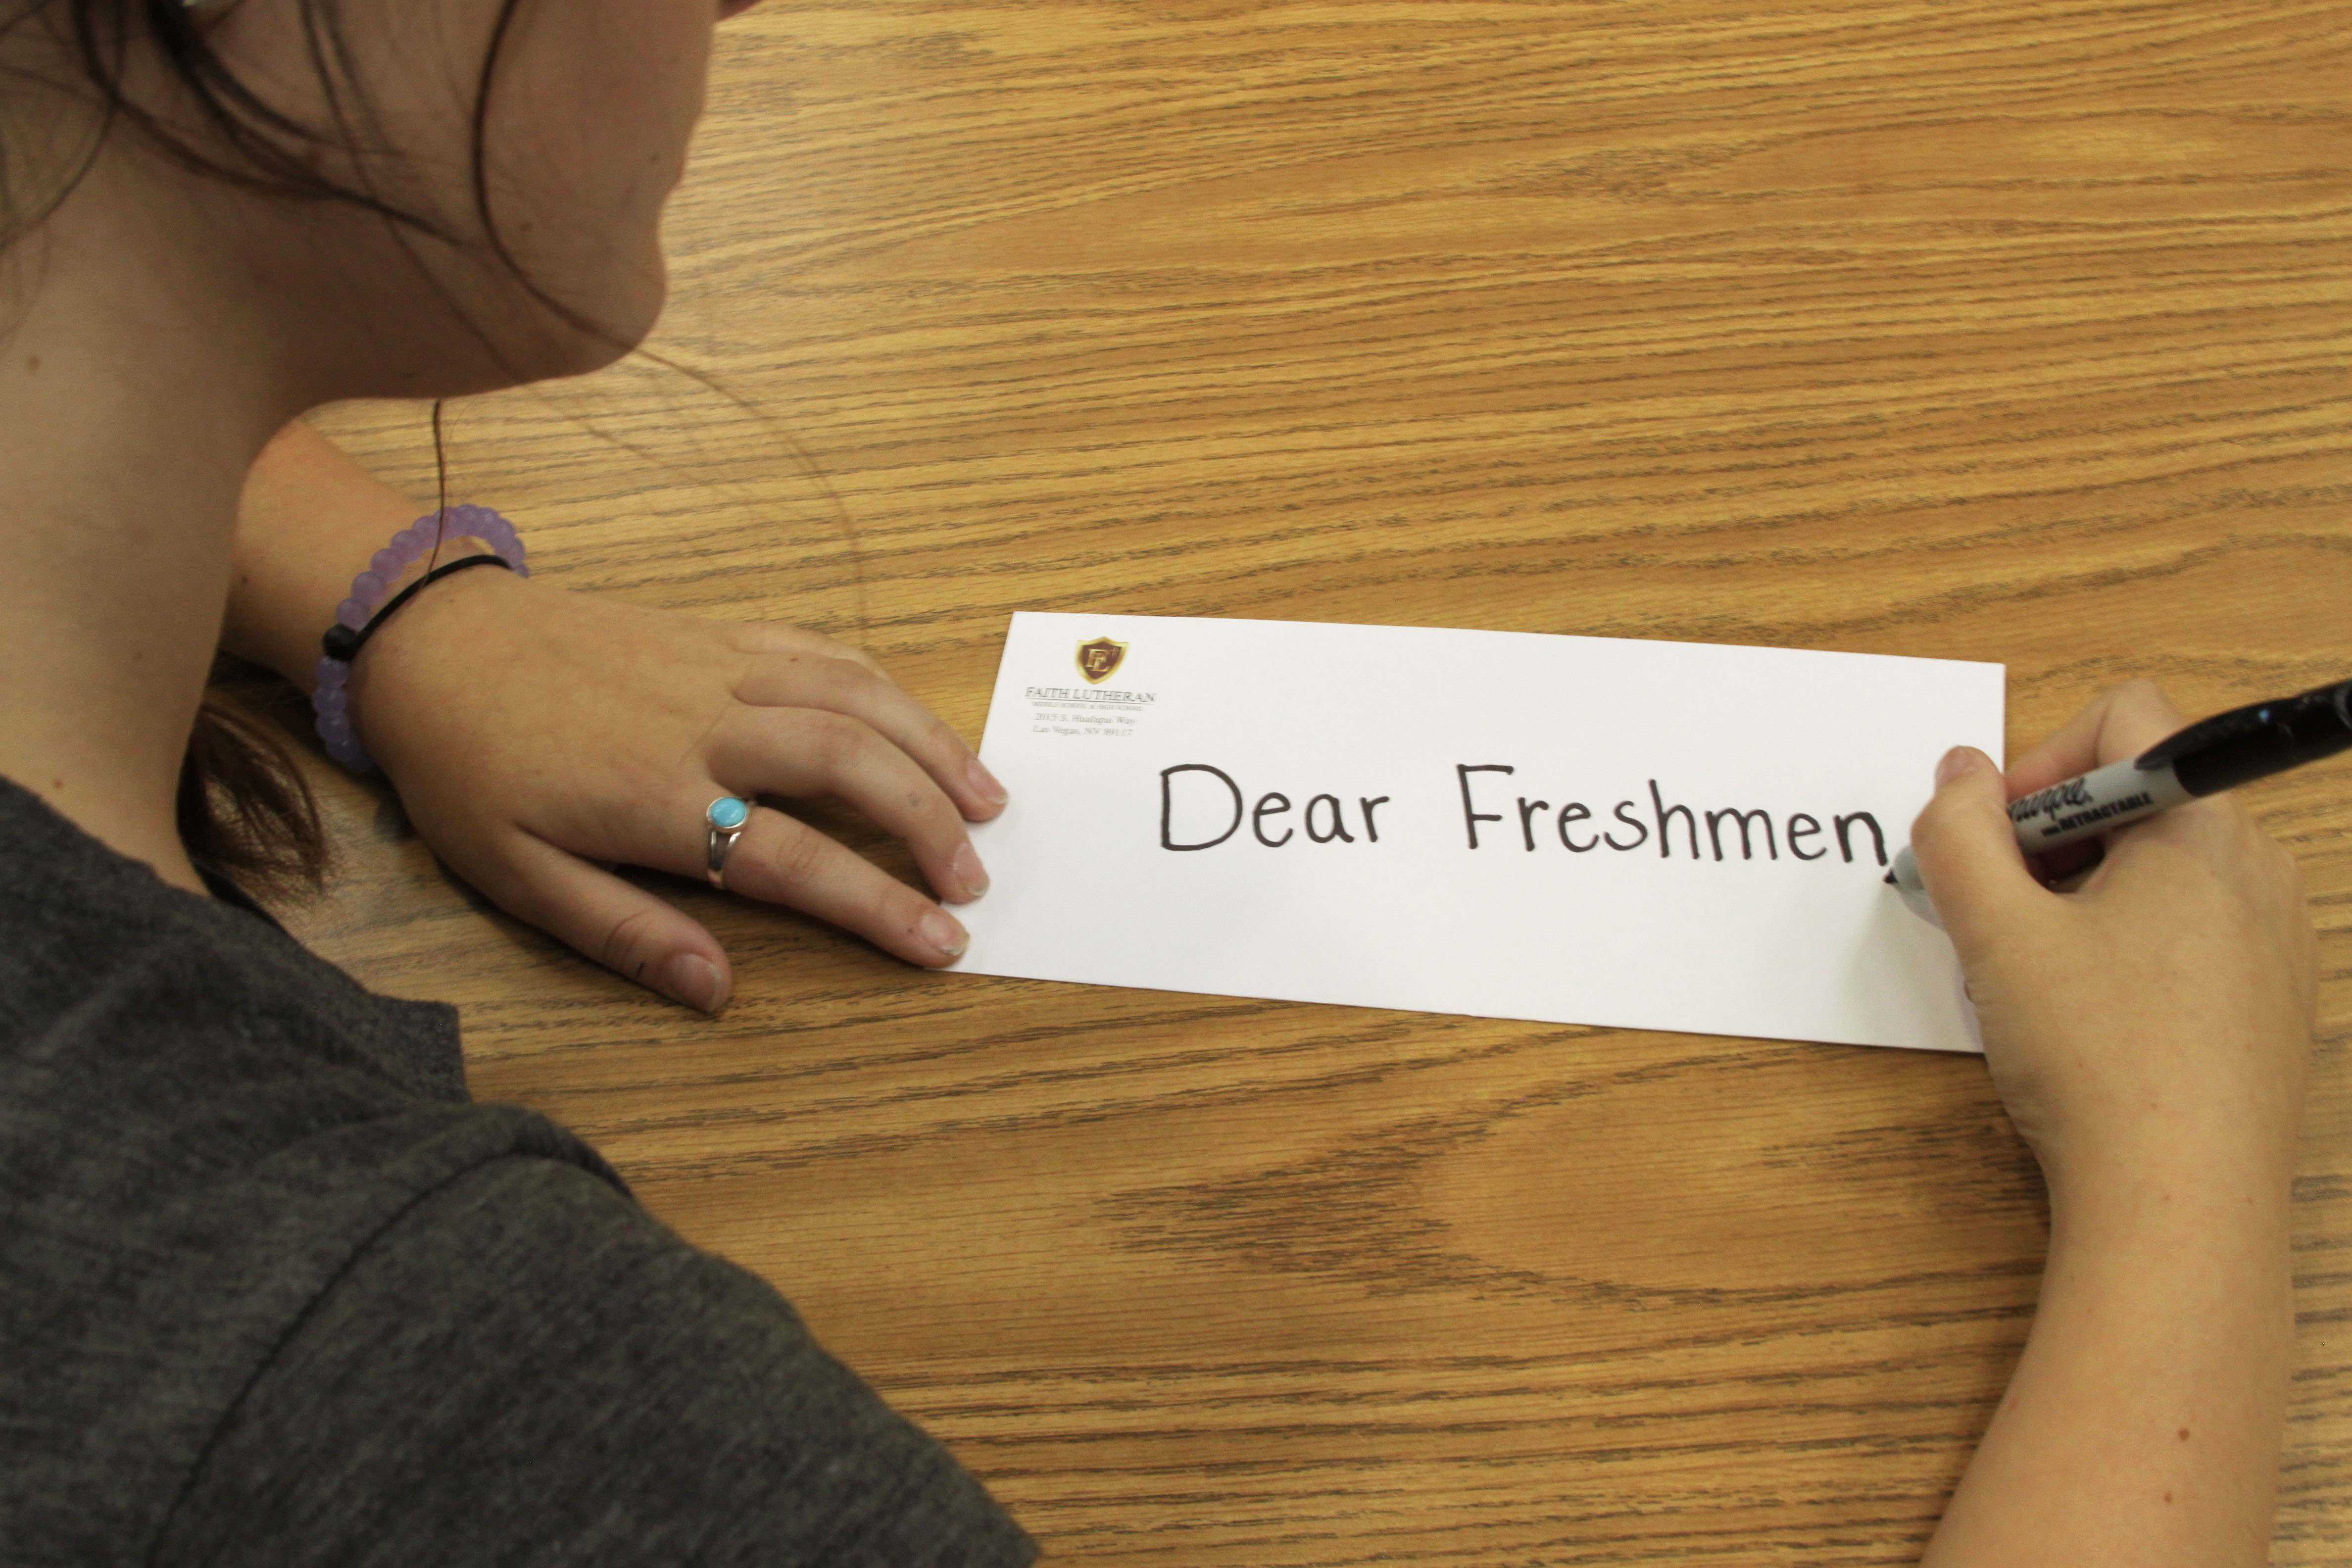 letter to freshmen In love, mama, a mom writes a letter to her daughter before she leaves for freshman year she conveys motherly advice, love and a wicked sense of humor.